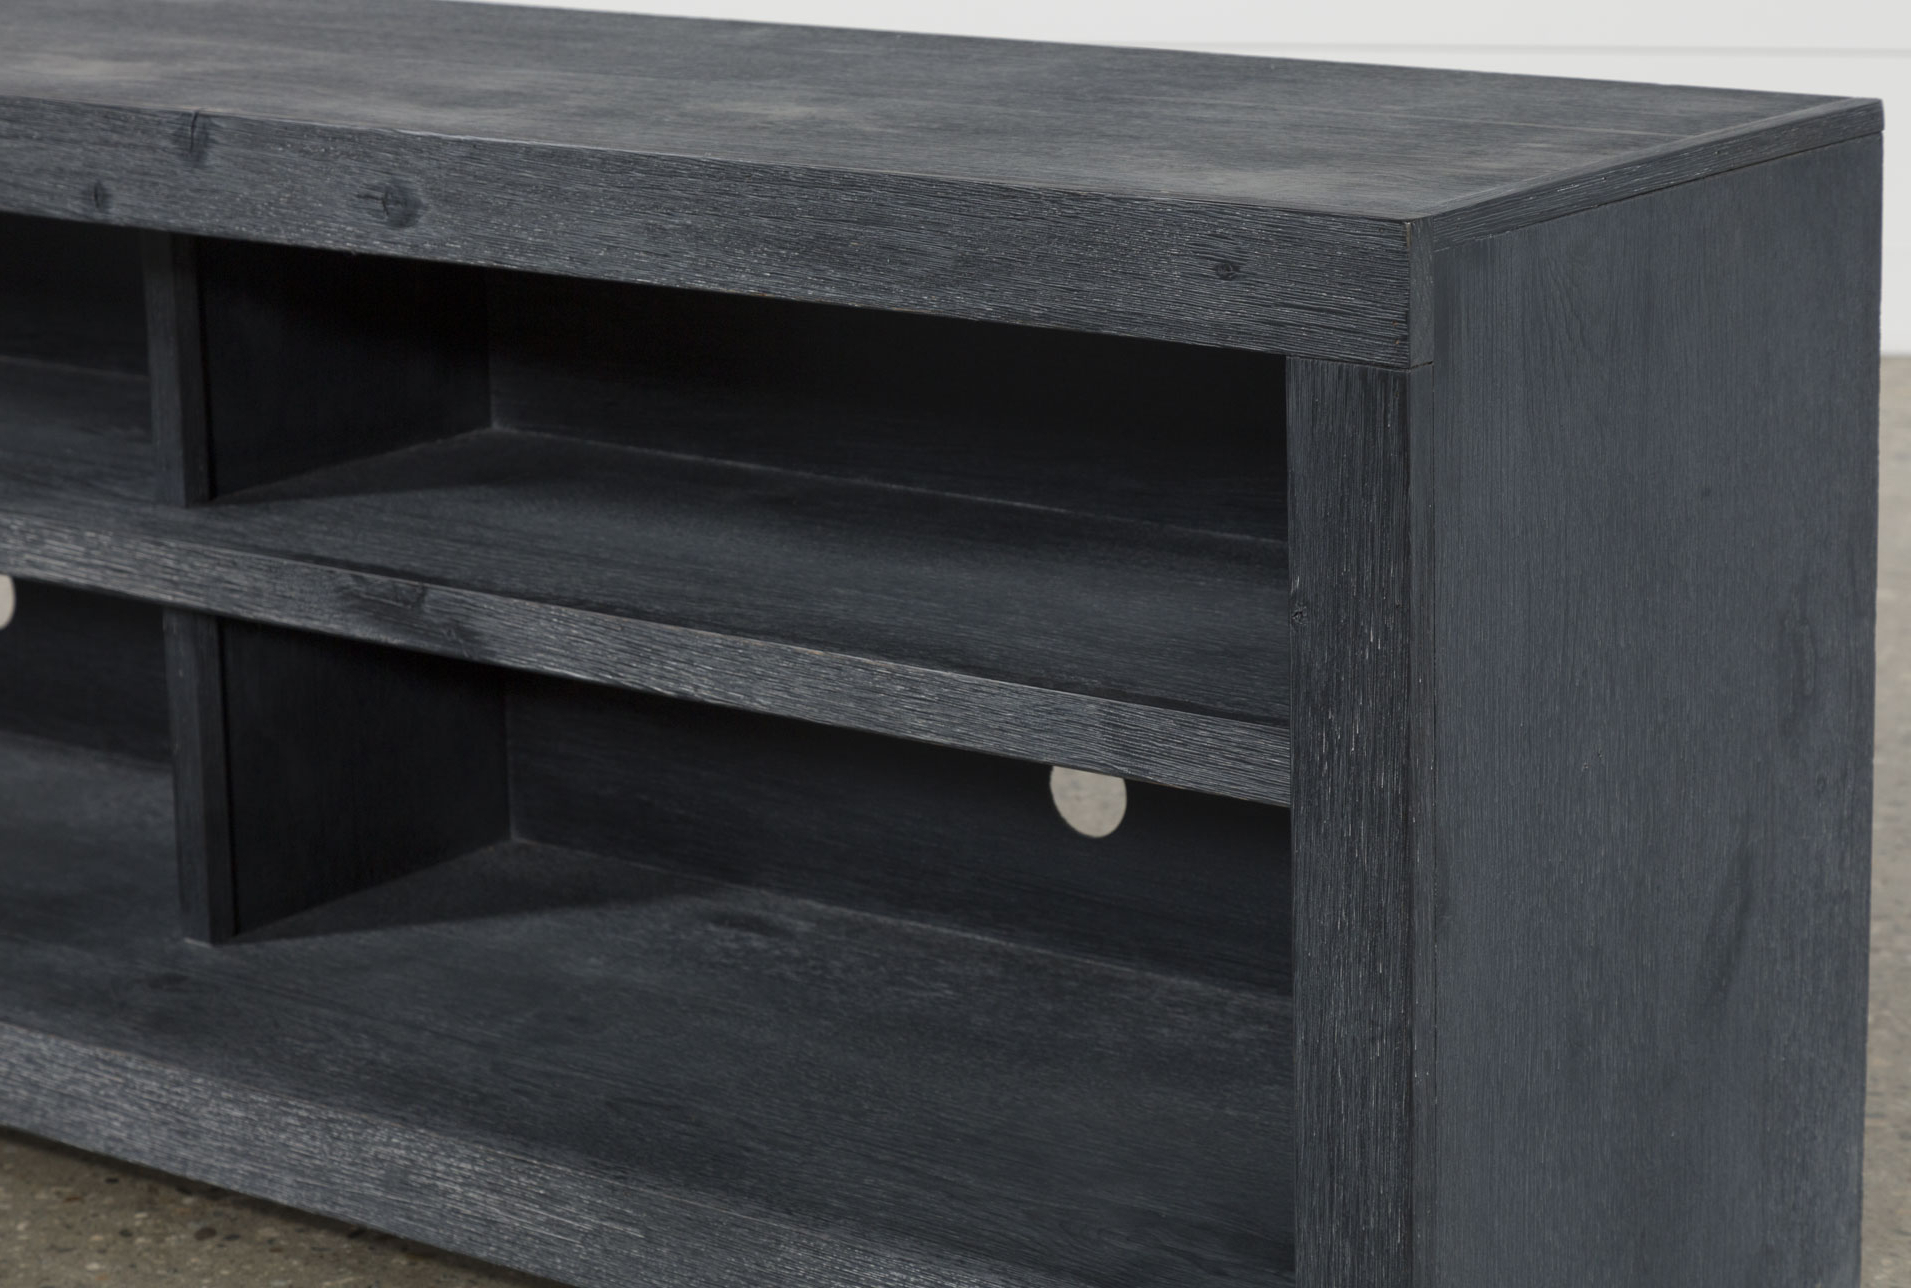 Kilian Black 74 Inch Tv Stand | Products | Pinterest | Black In Kilian Black 74 Inch Tv Stands (View 8 of 20)